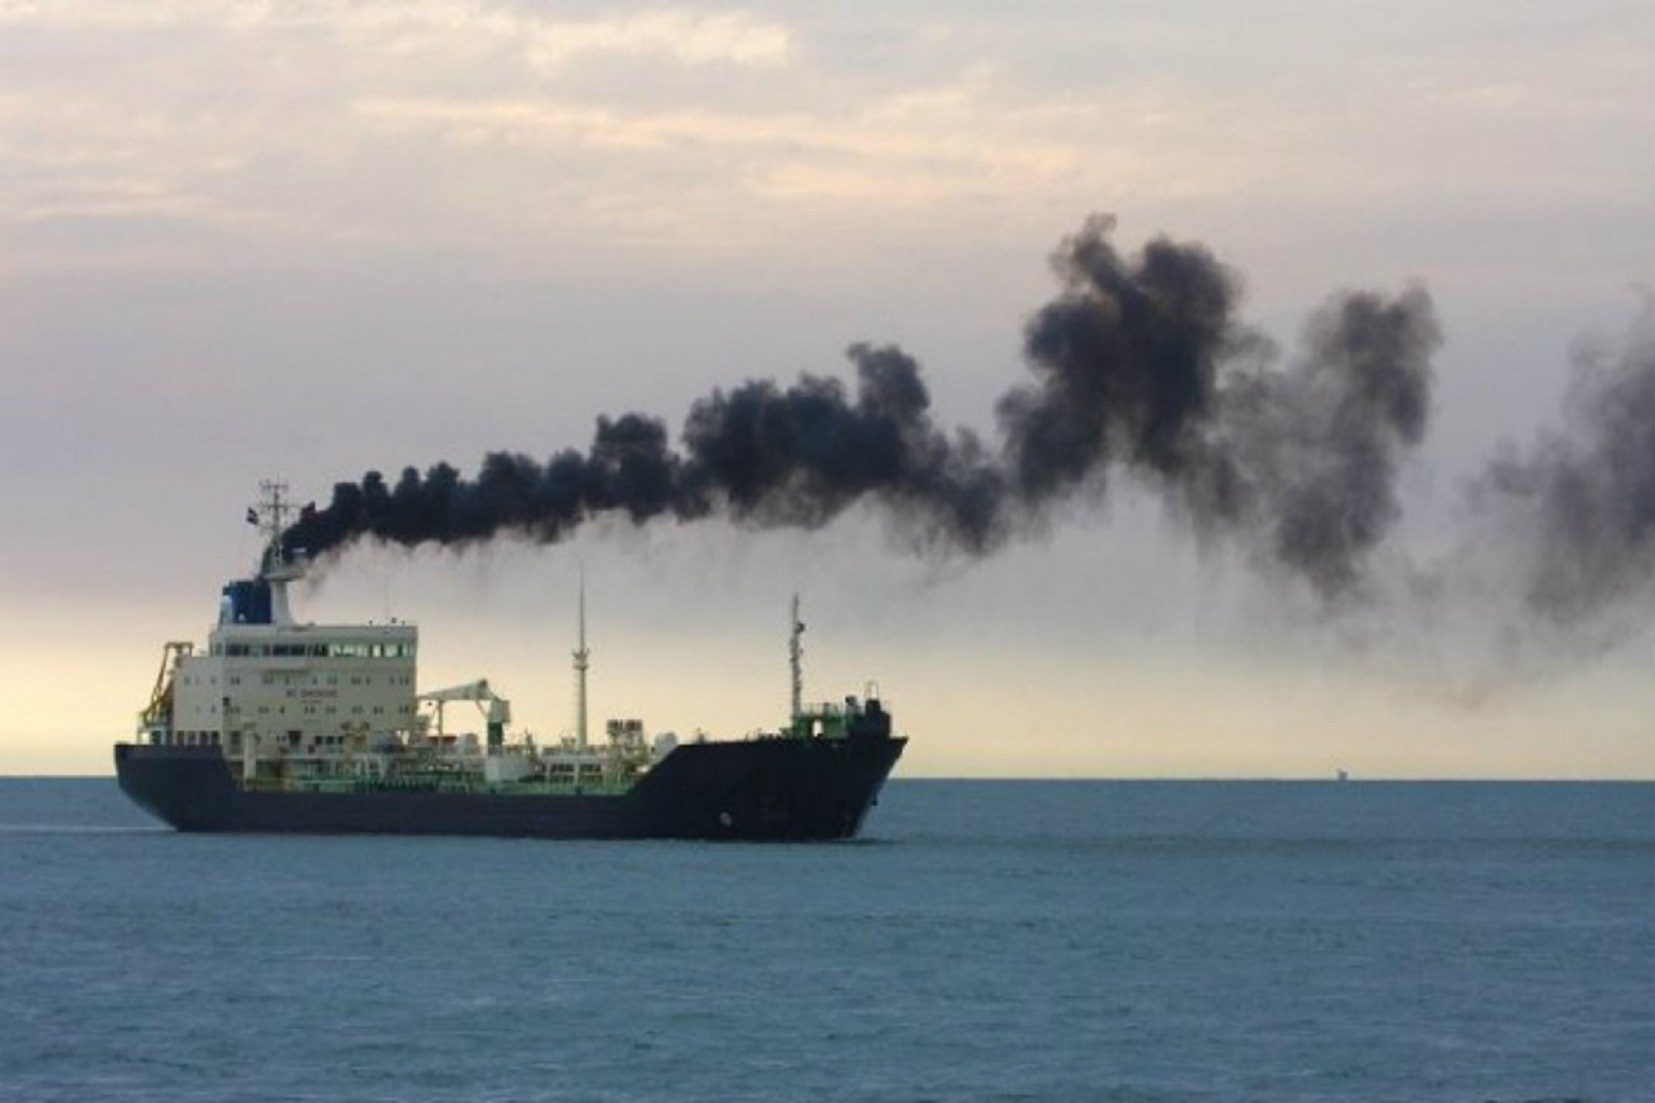 BIMCO: IBC and MARPOL ANNEX II amendments require preparations by January 1, 2021